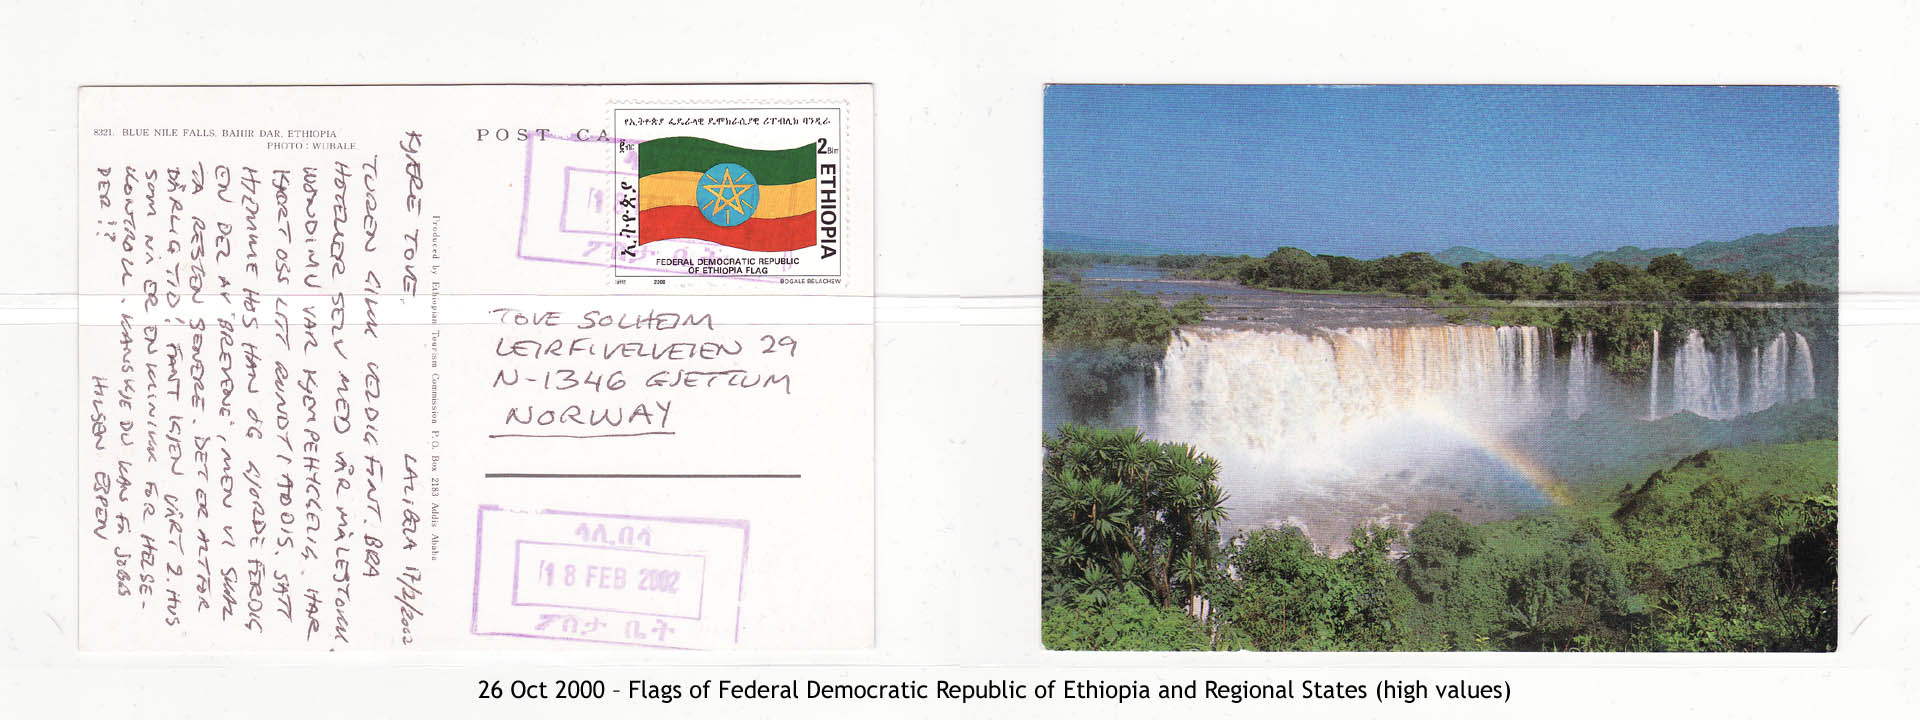 20001026 – Flags of Federal Democratic Republic of Ethiopia and Regional States (high values)